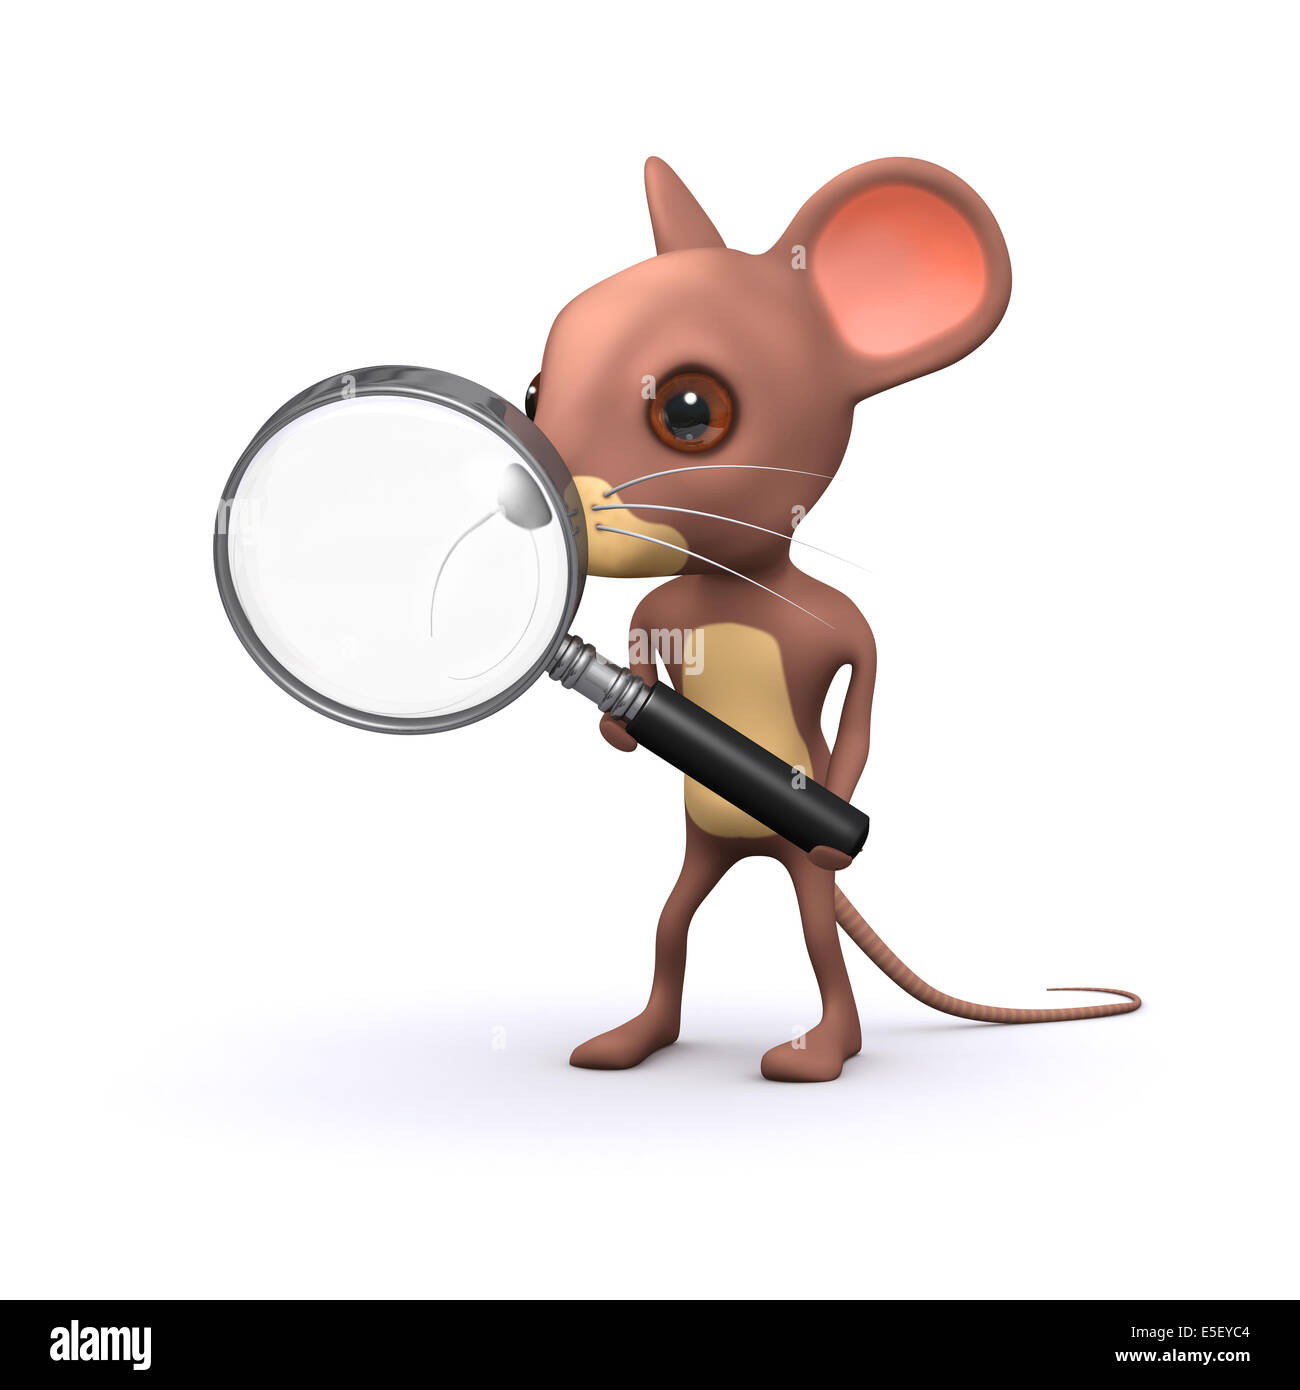 3d render of a cartoon mouse searching with a magnifying glass Stock Photo